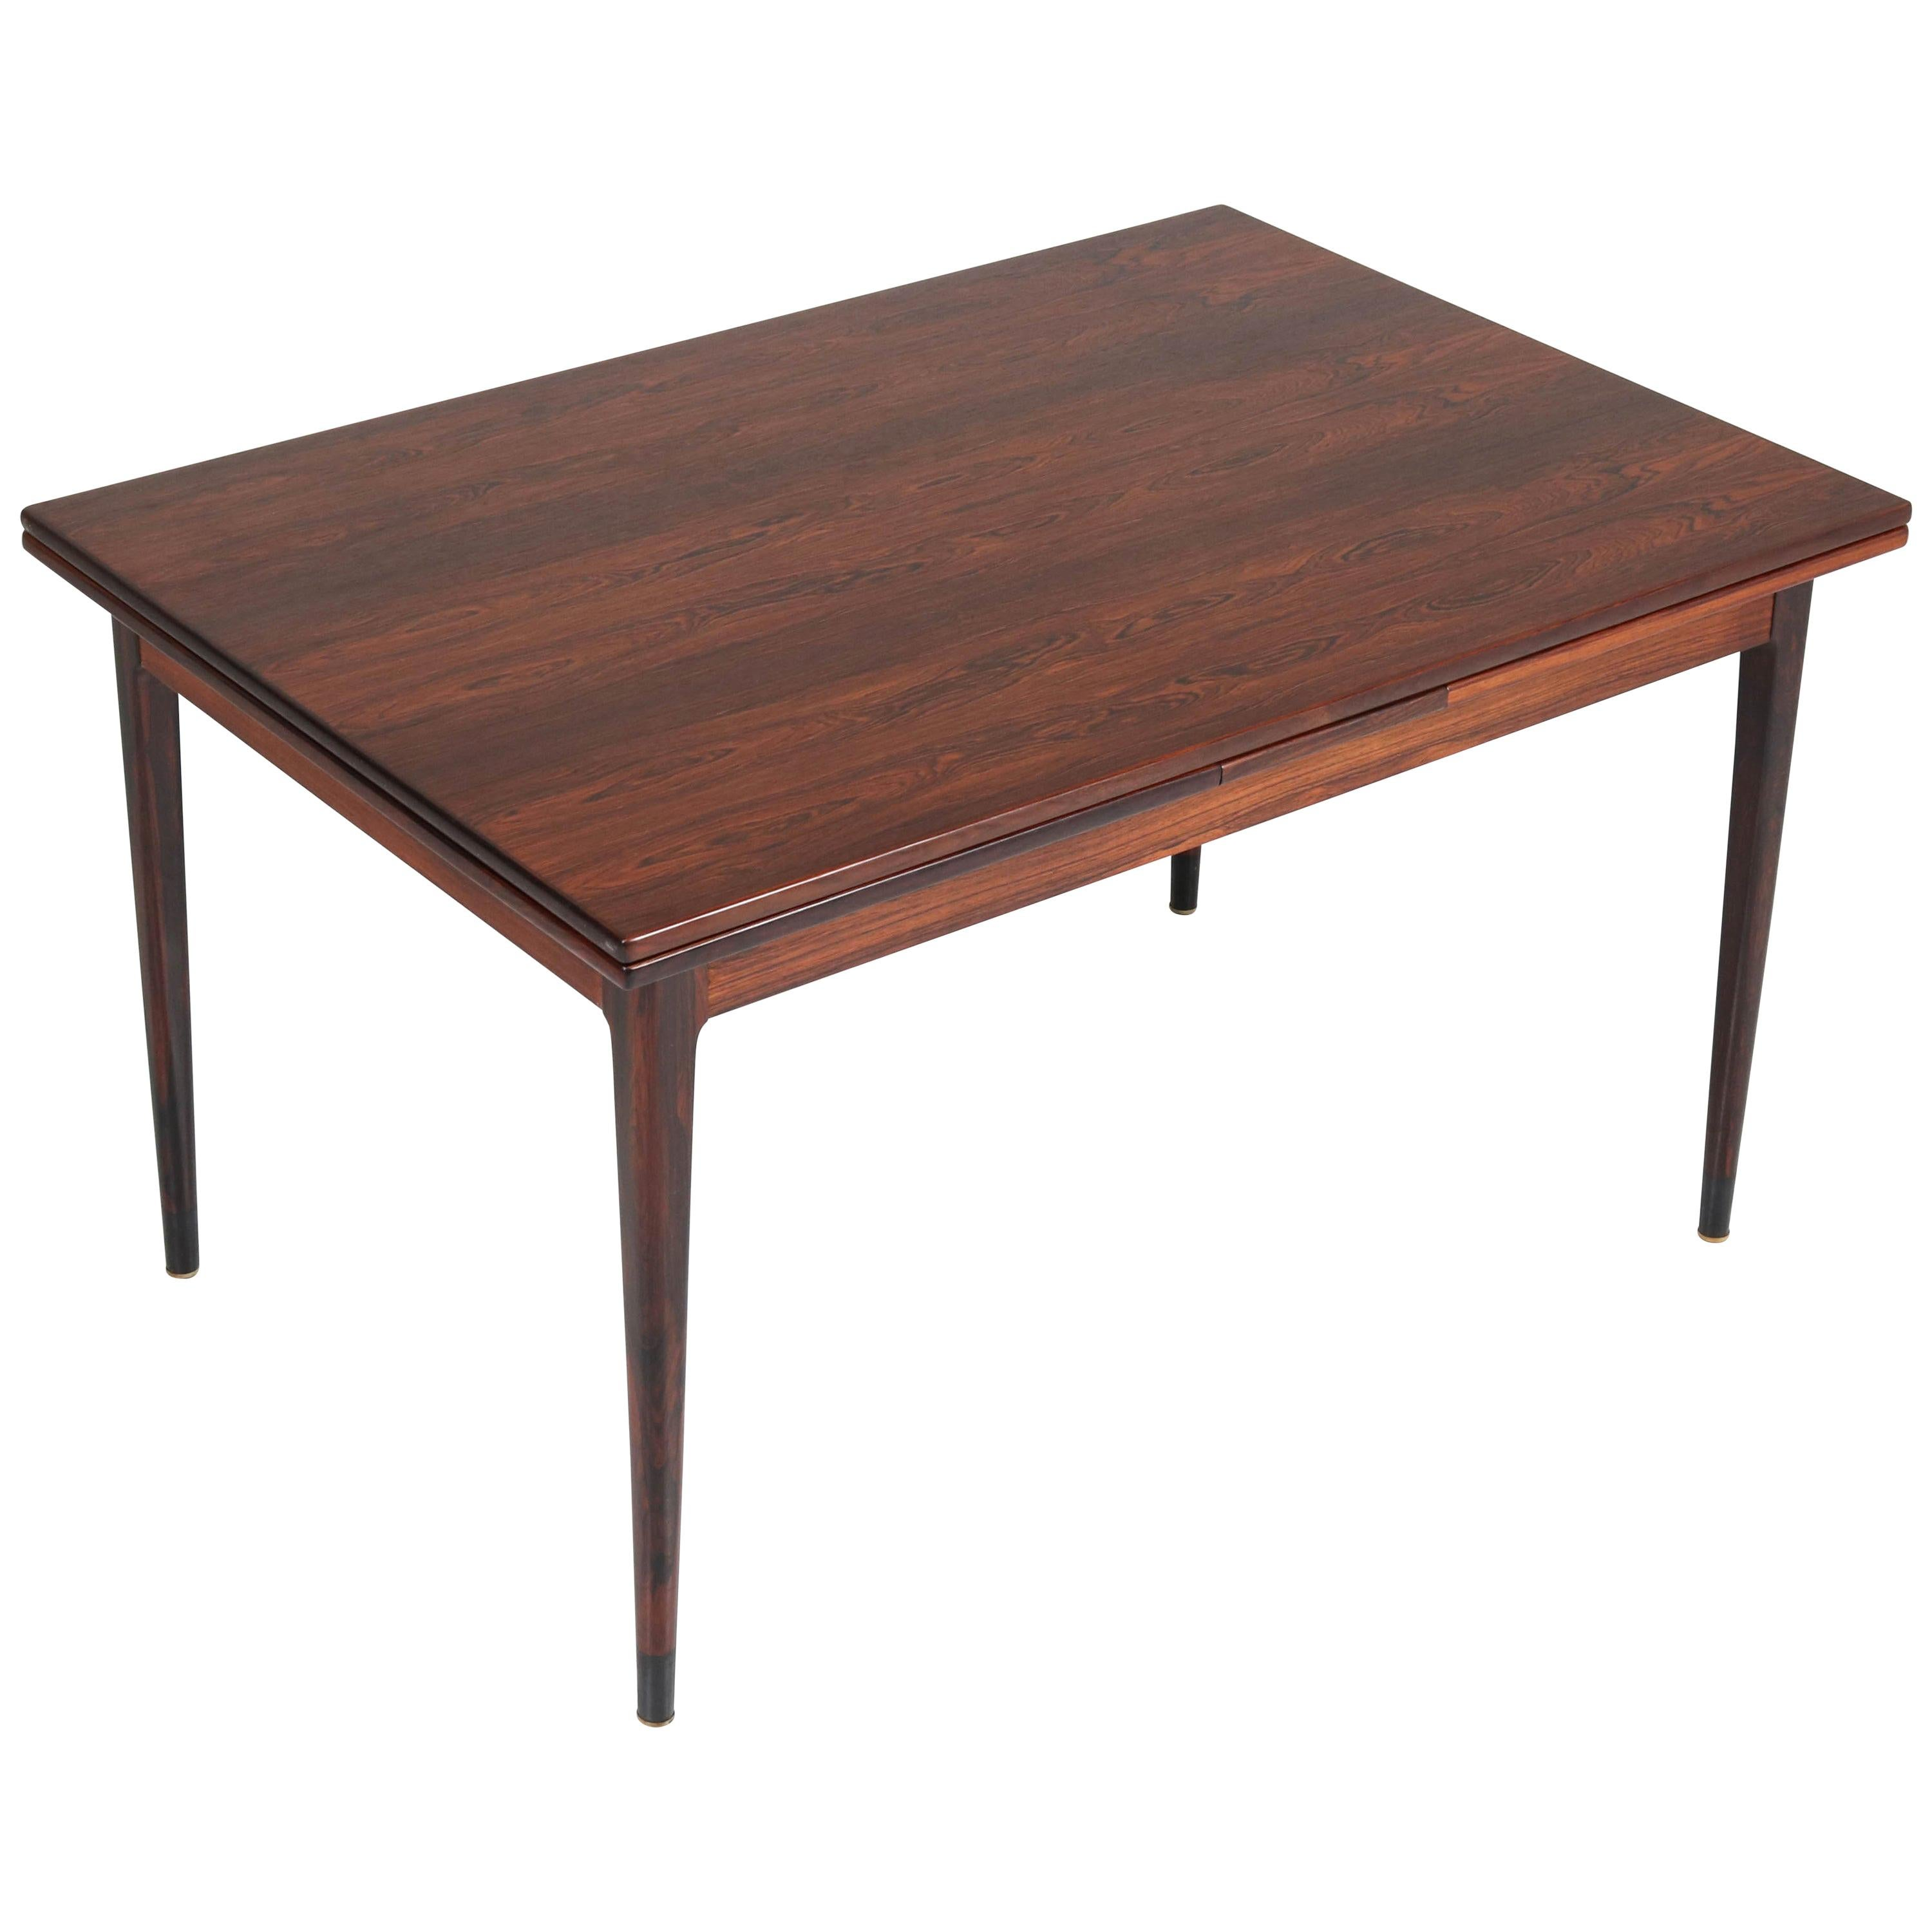 Rosewood Furniture 7 351 For Sale At 1stdibs